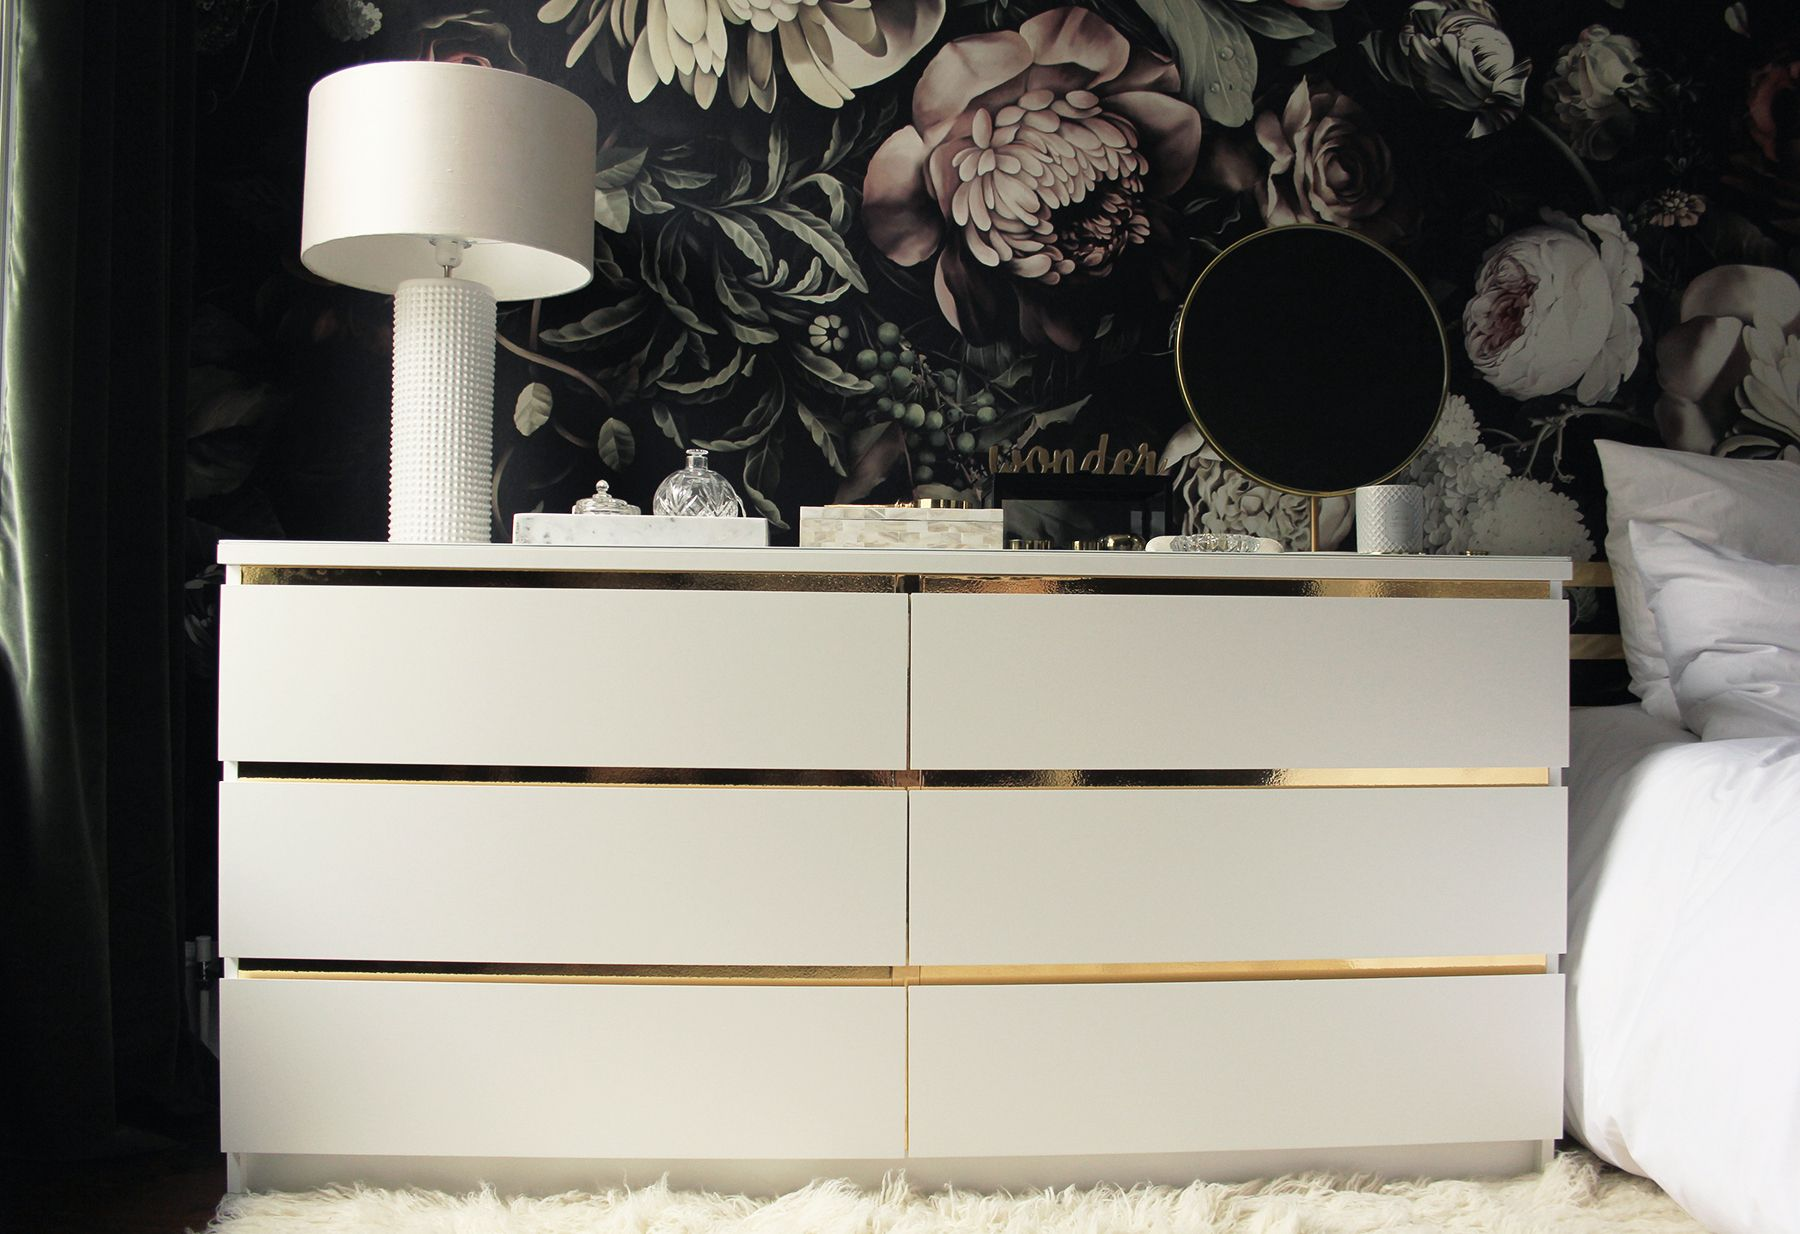 Preciously me diy ikea hack customize and glamorize a